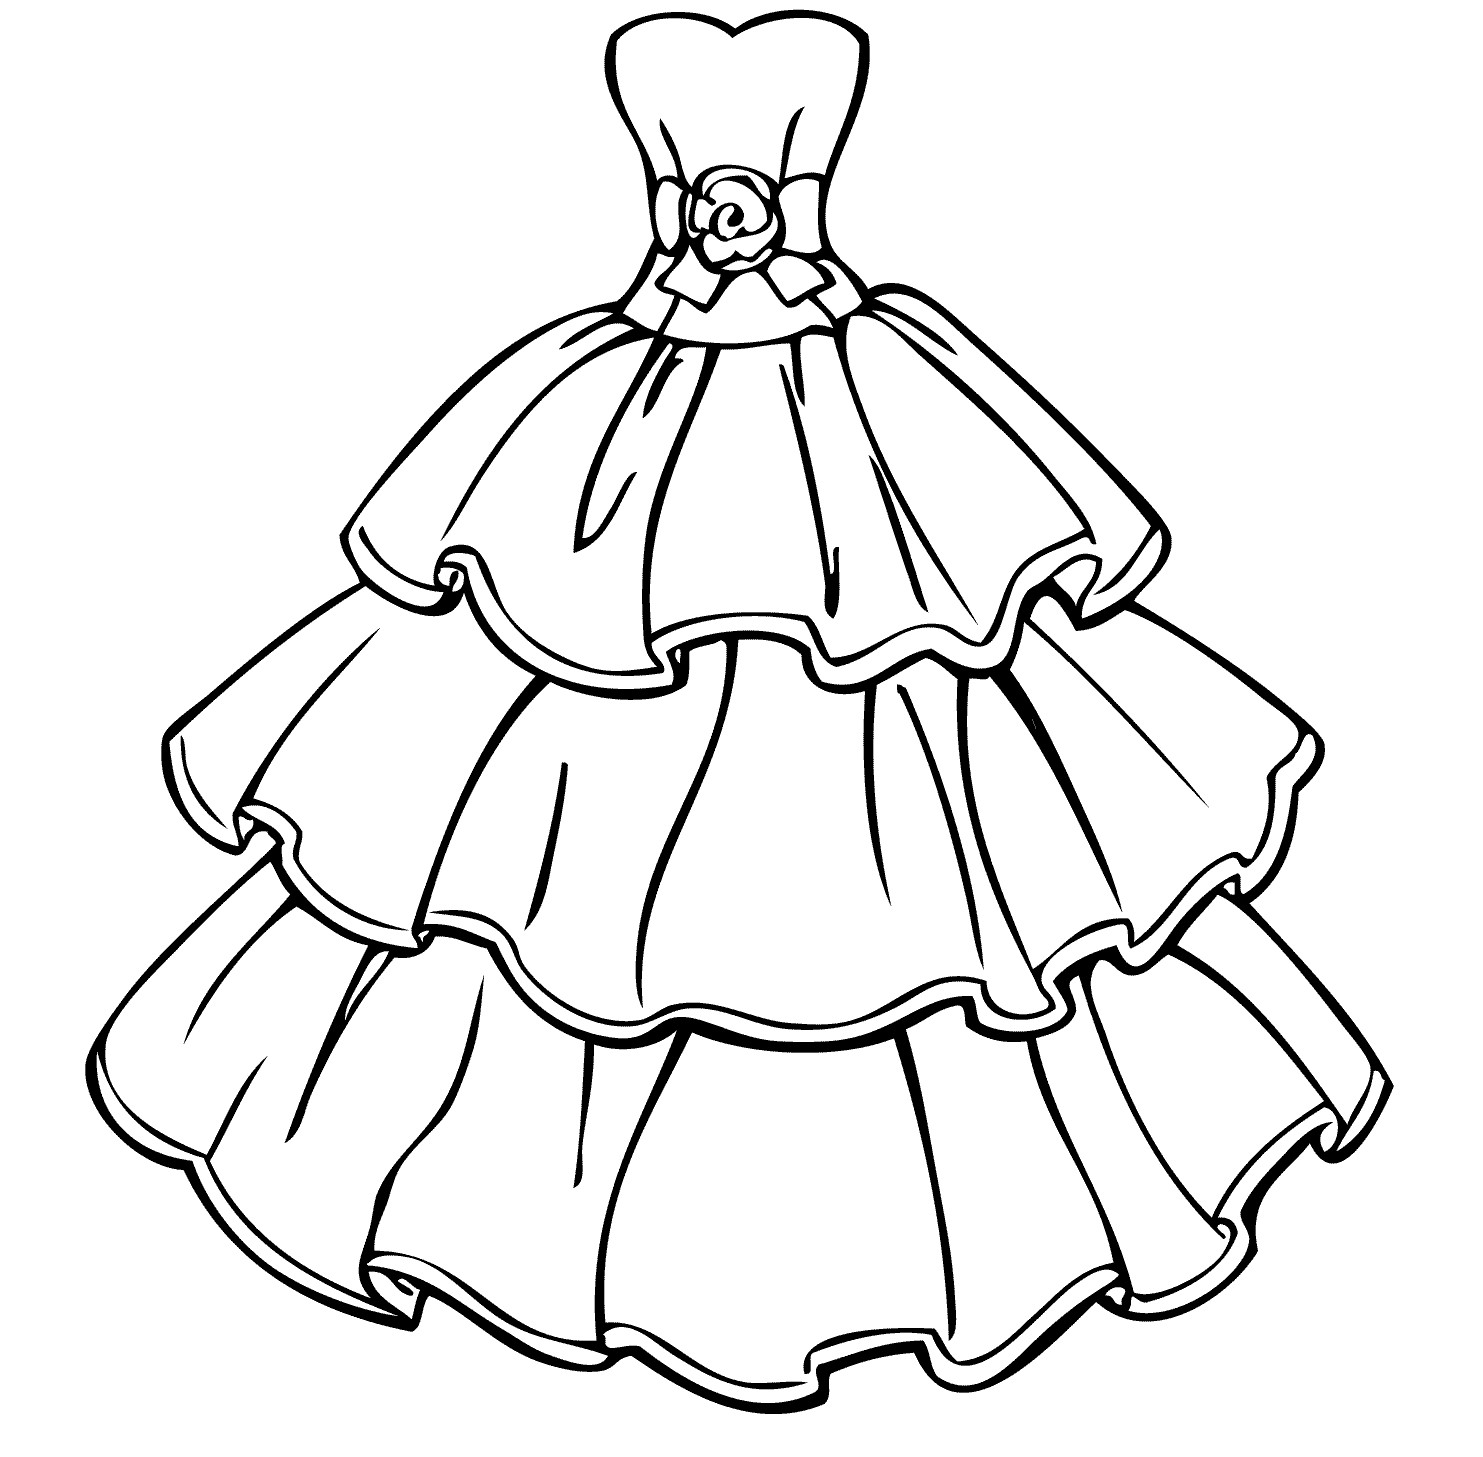 dress clipart coloring dress coloring pages free download on clipartmag dress clipart coloring